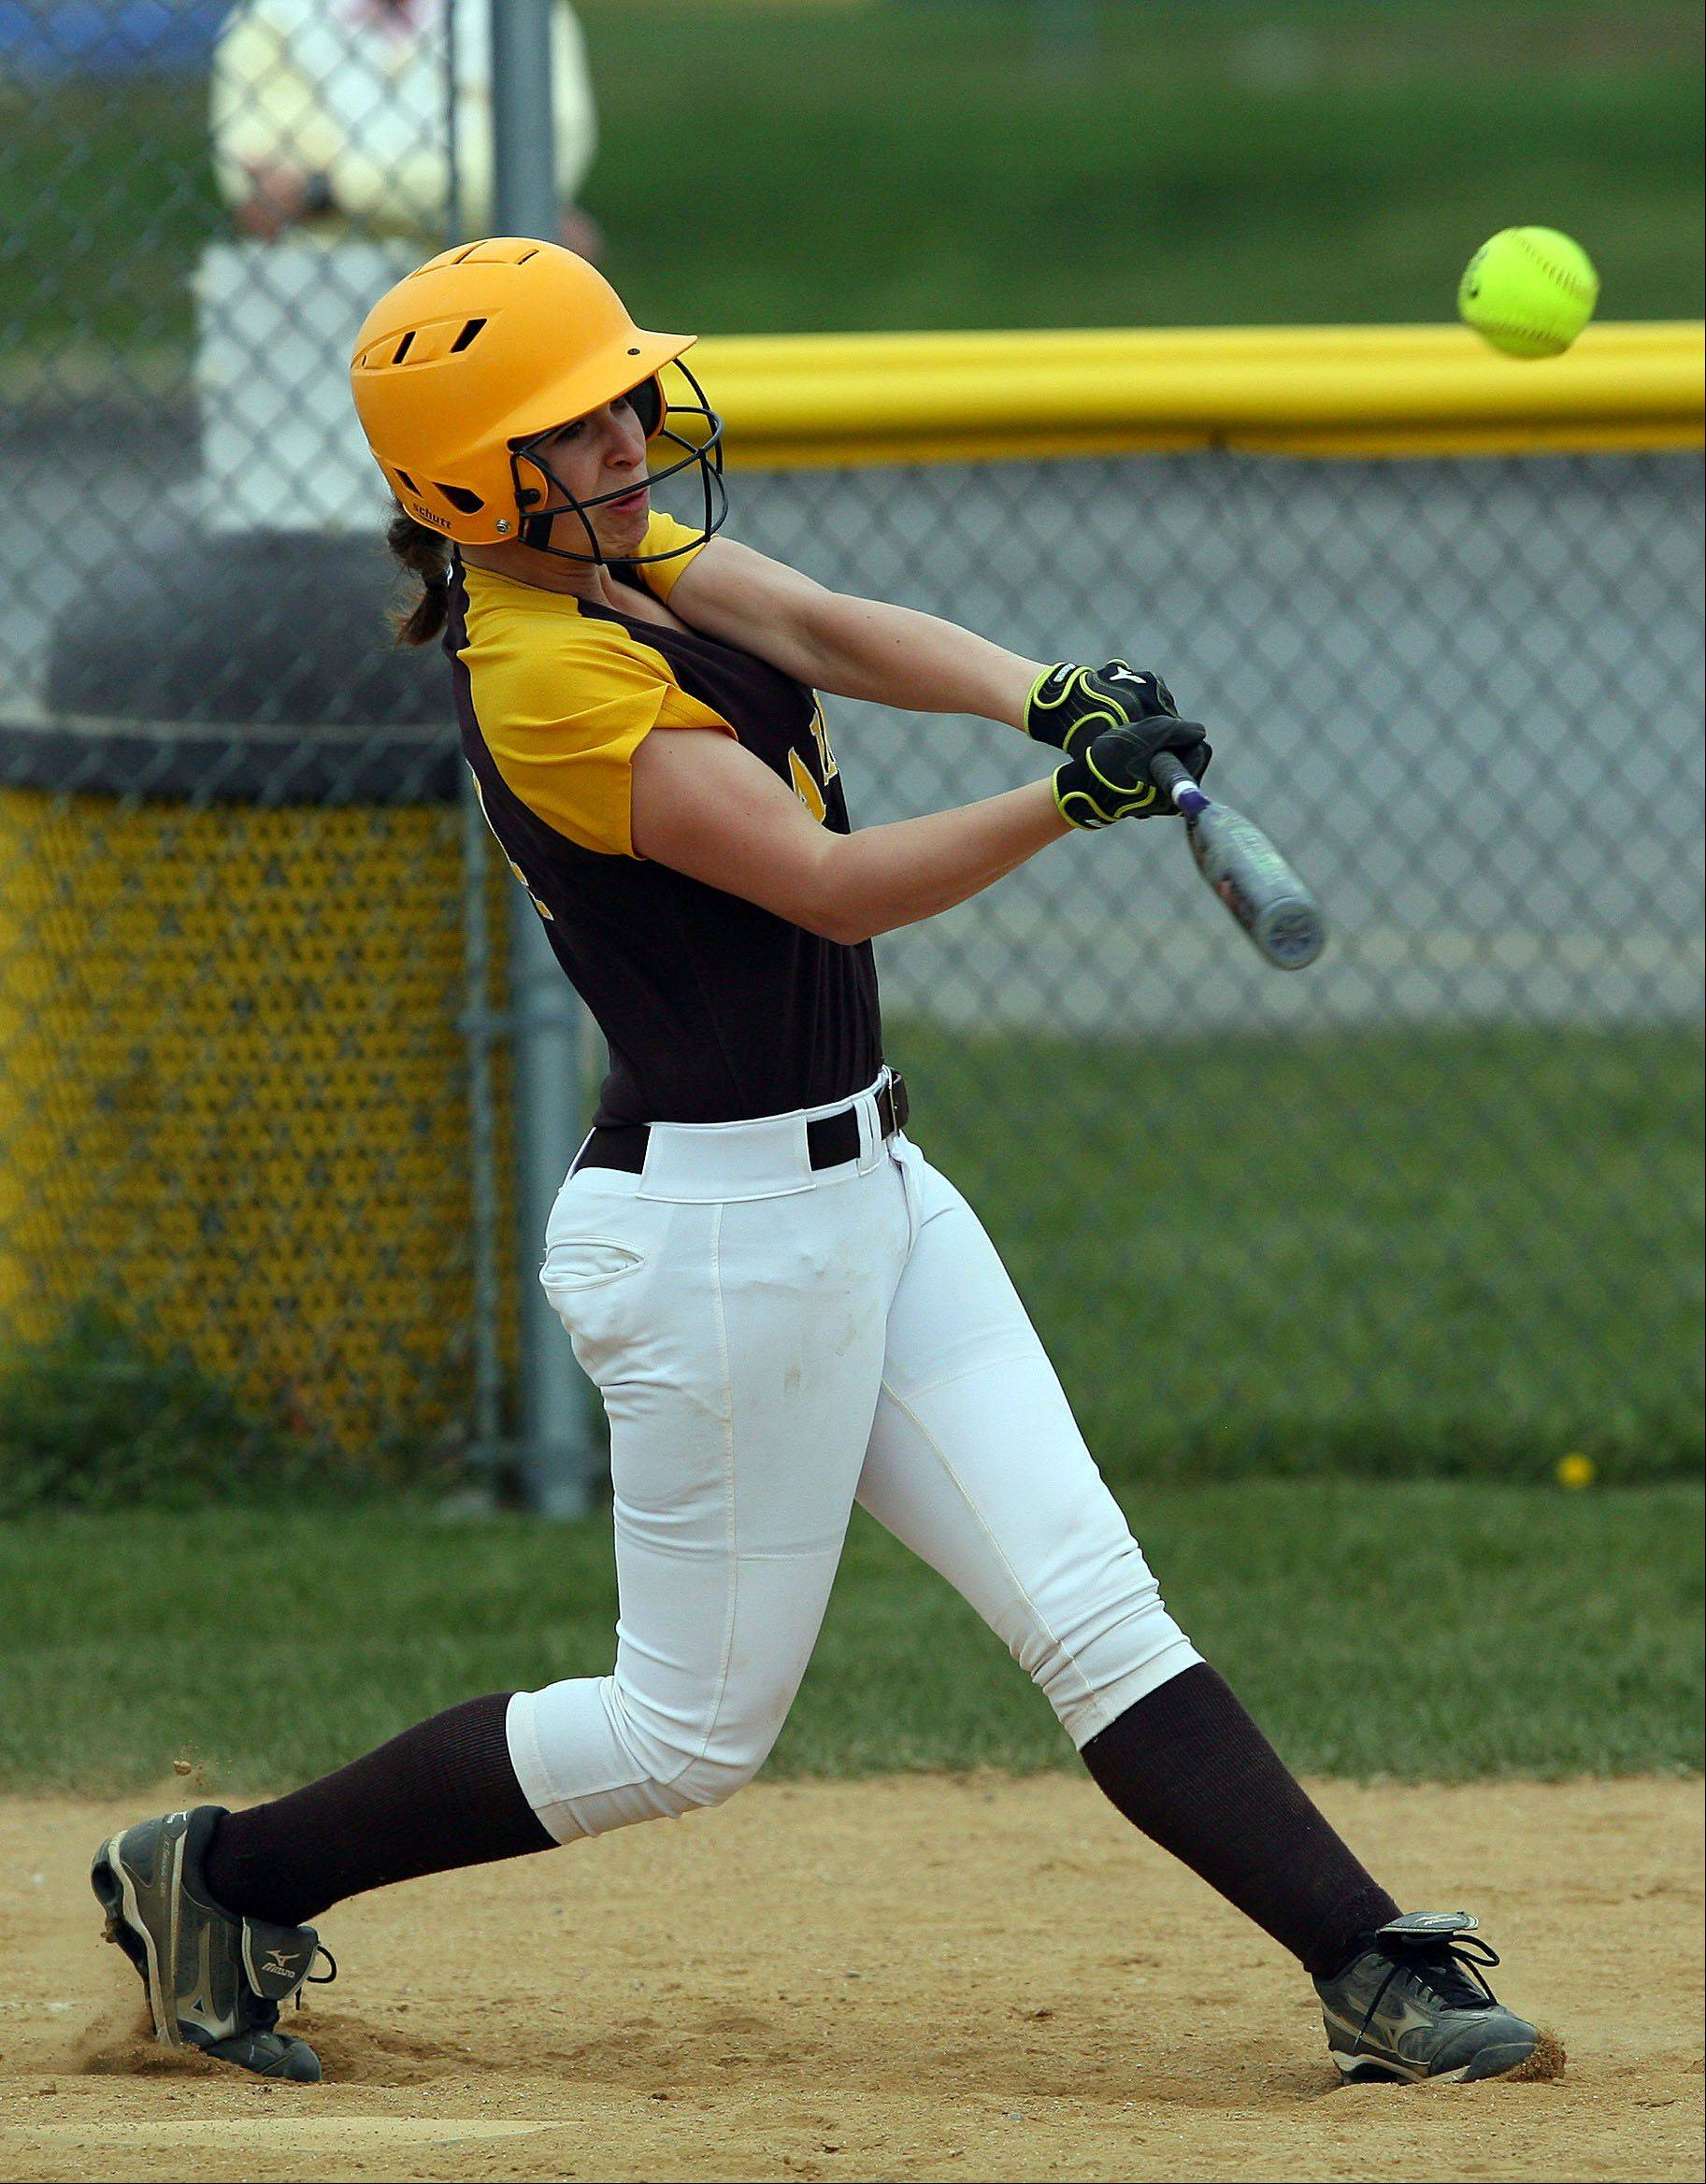 Carmel's Jenny Behan has committed to a softball future at James Madison.